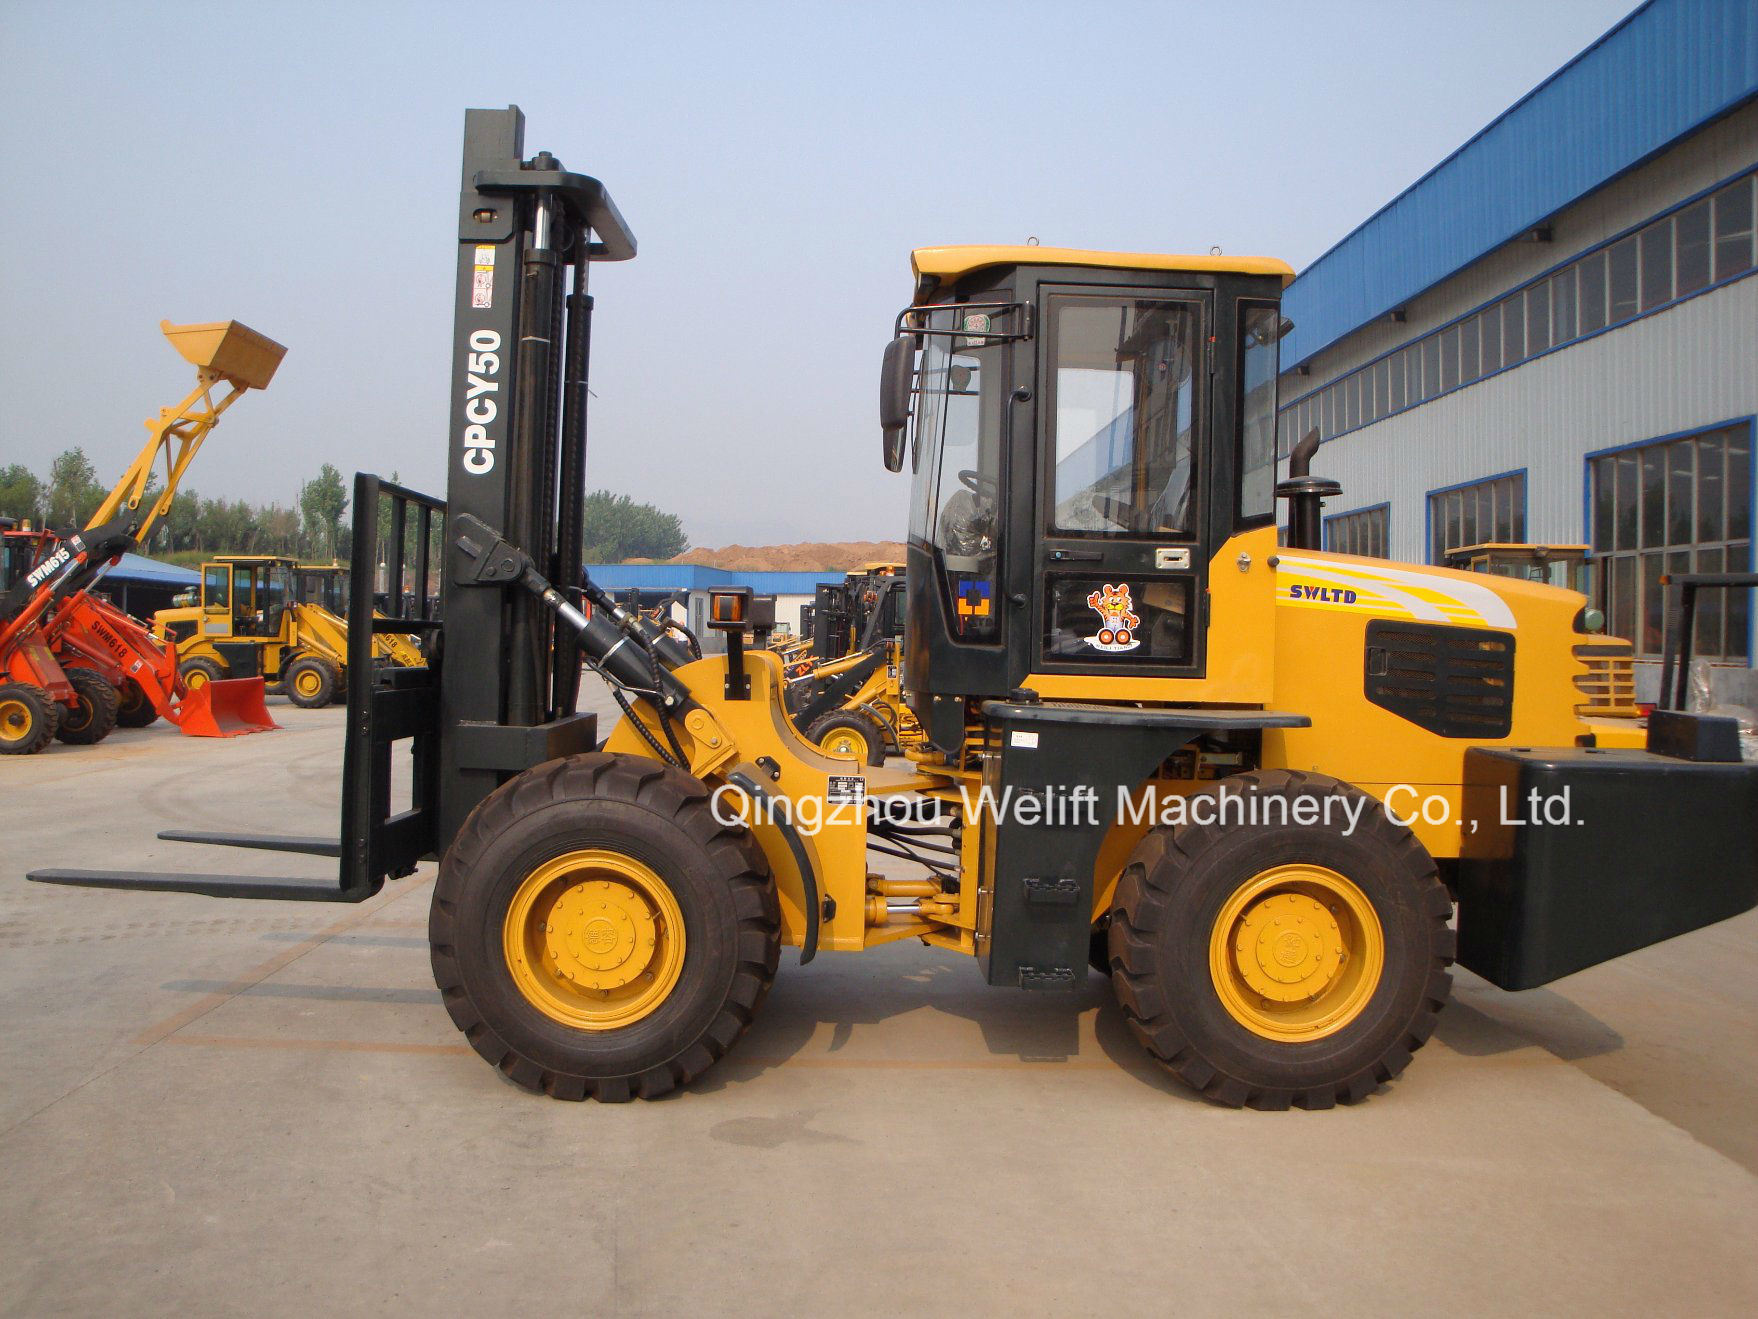 China 5t ce certified 4wd rough terrain forklift china rough china 5t ce certified 4wd rough terrain forklift china rough terrain forklift diesel forklift 1betcityfo Image collections